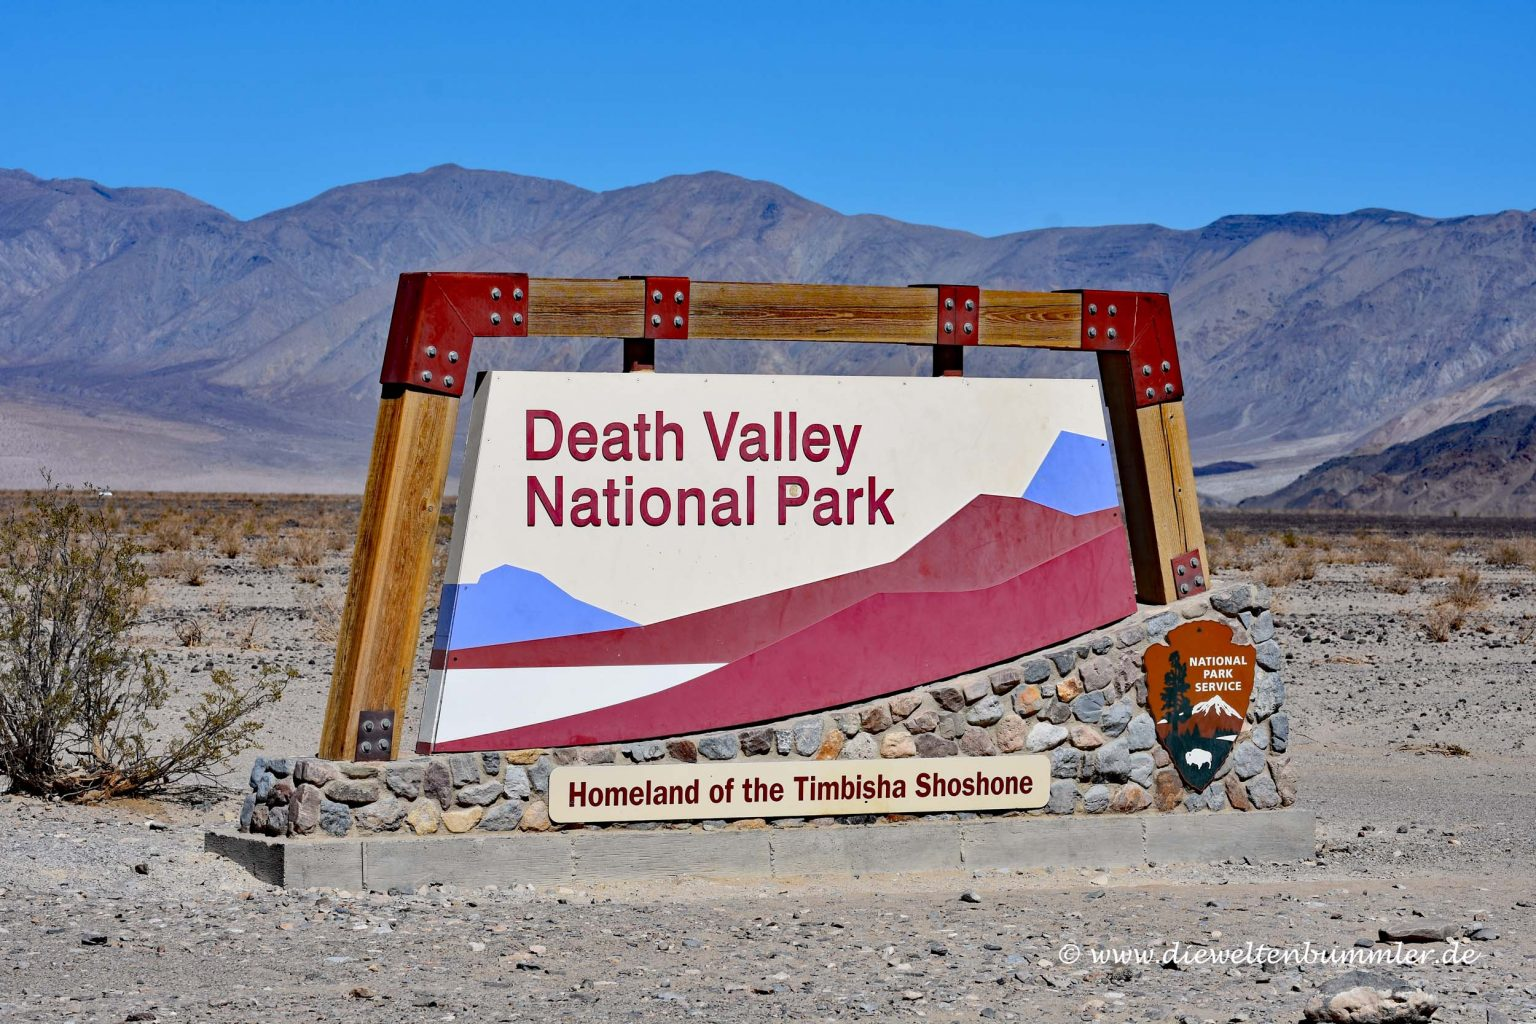 Willkommen im Death Valley Nationalpark